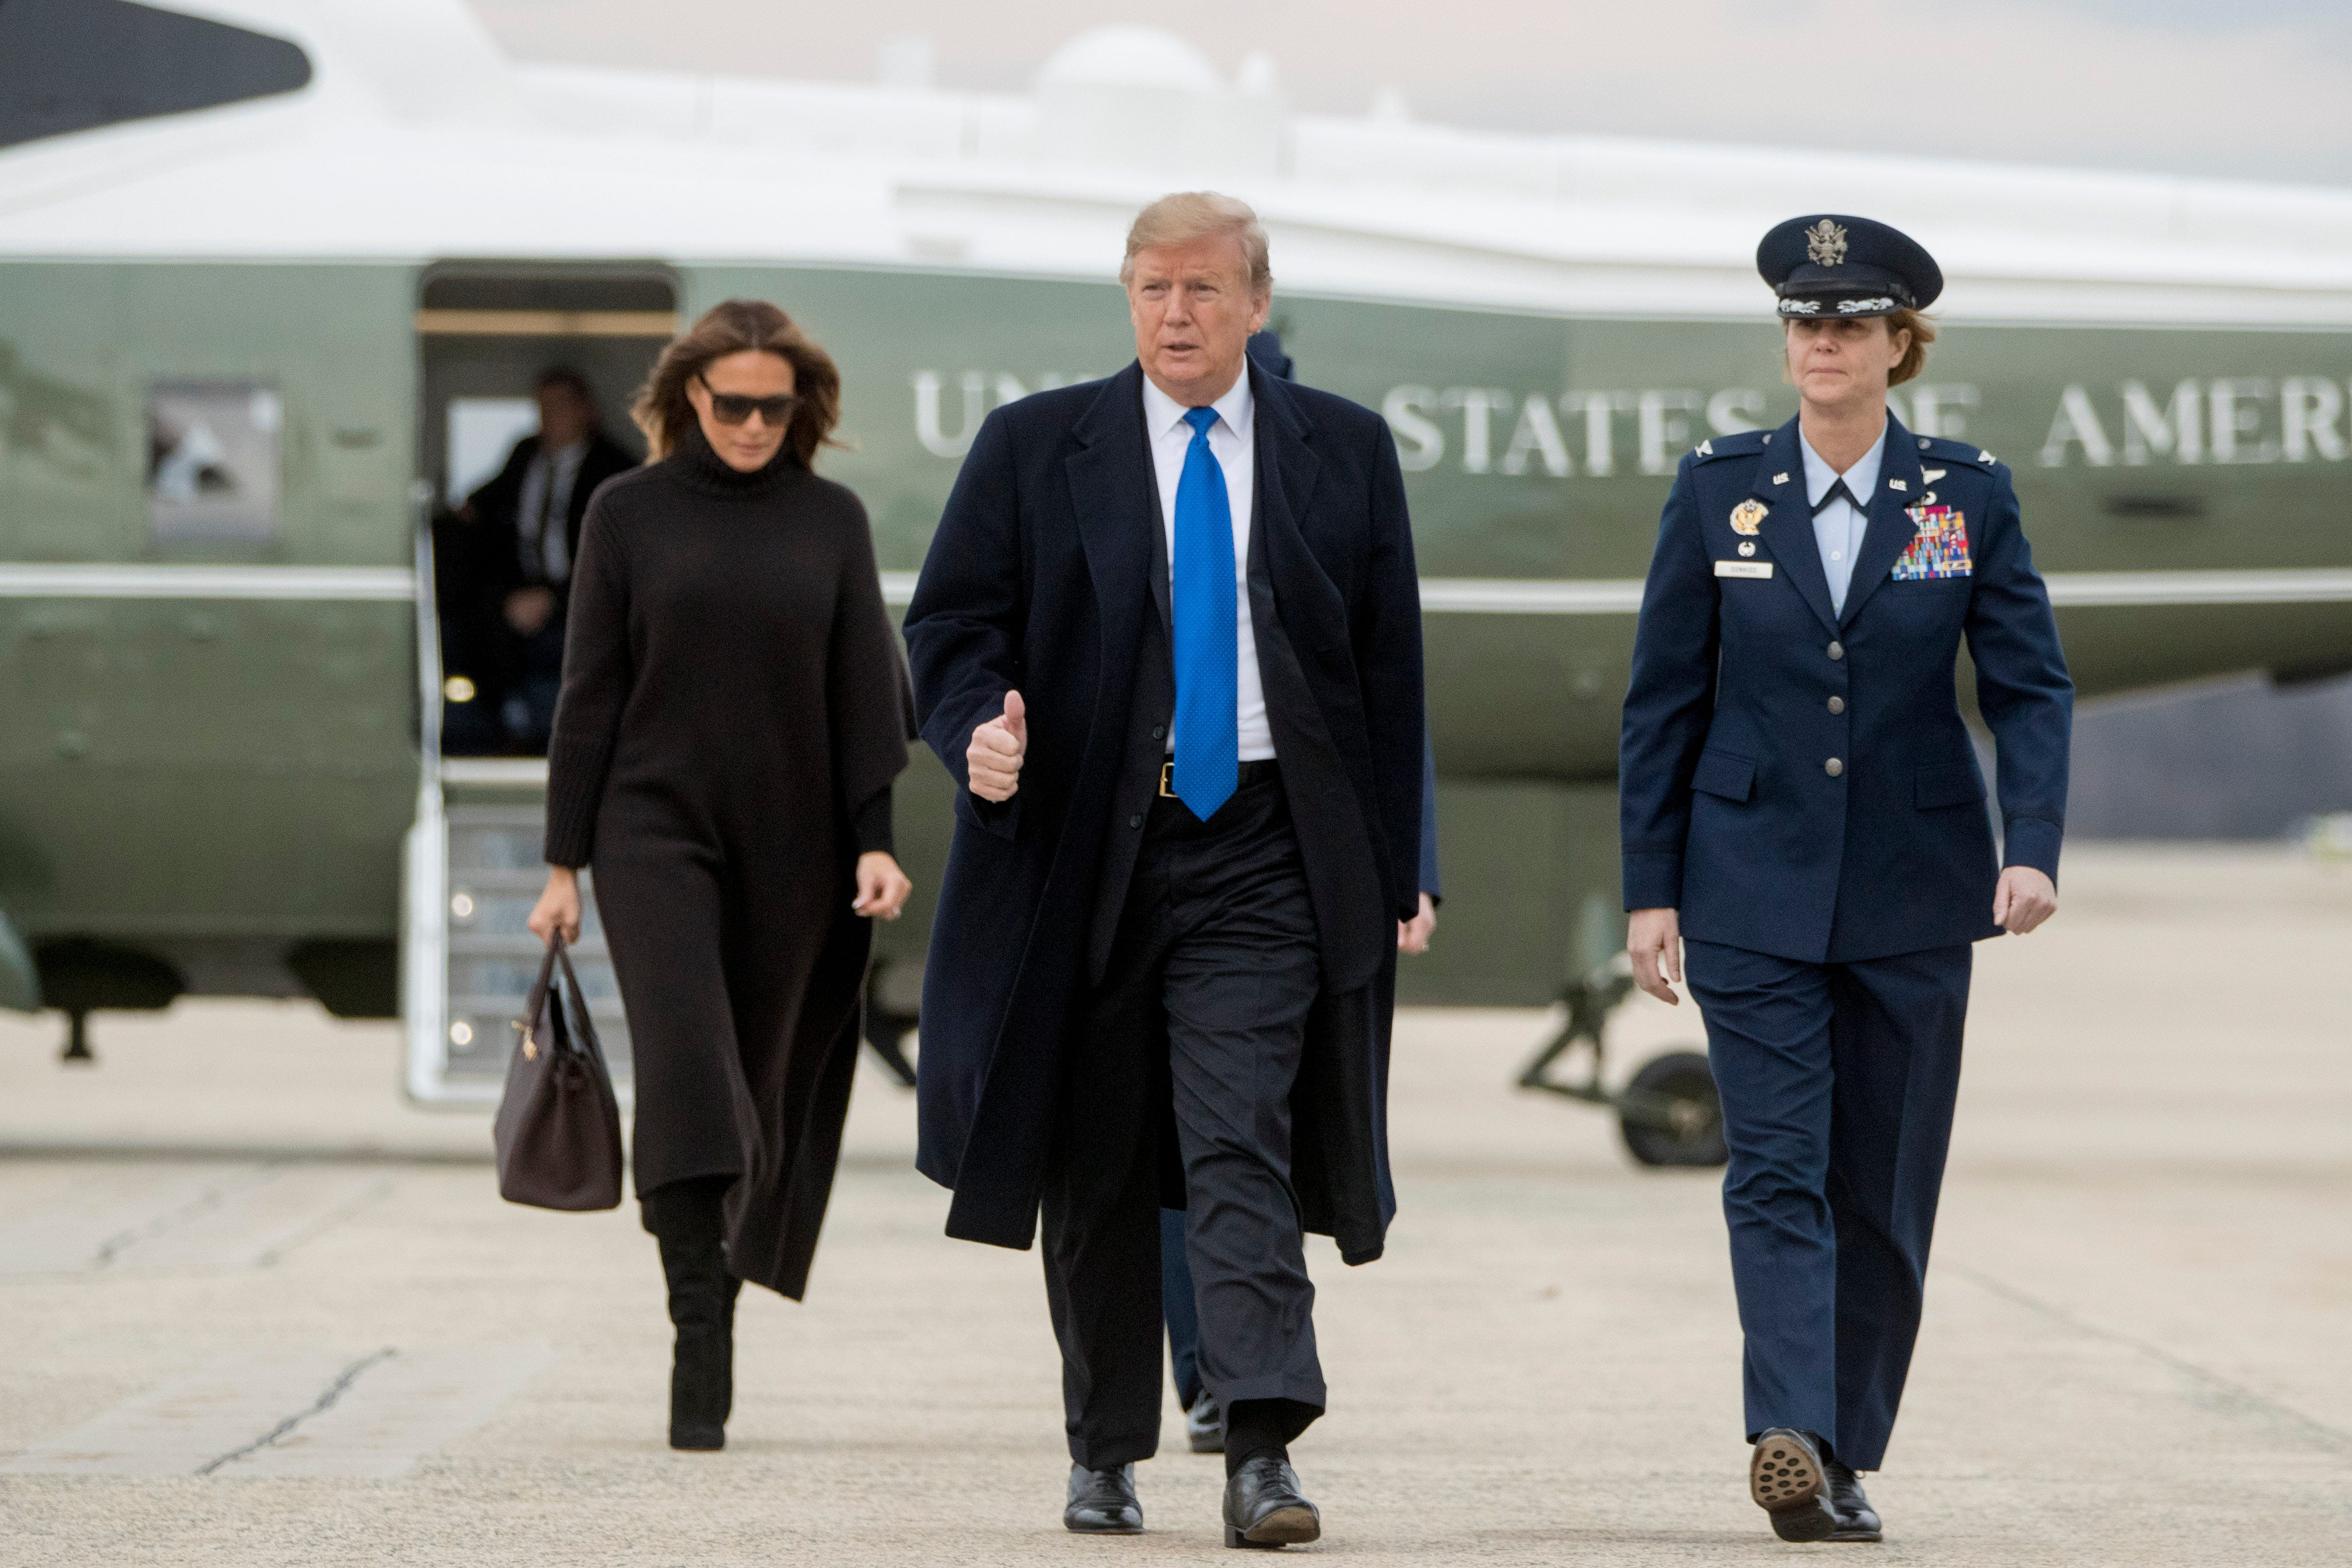 Fact check: President Donald Trump's national emergency remarks